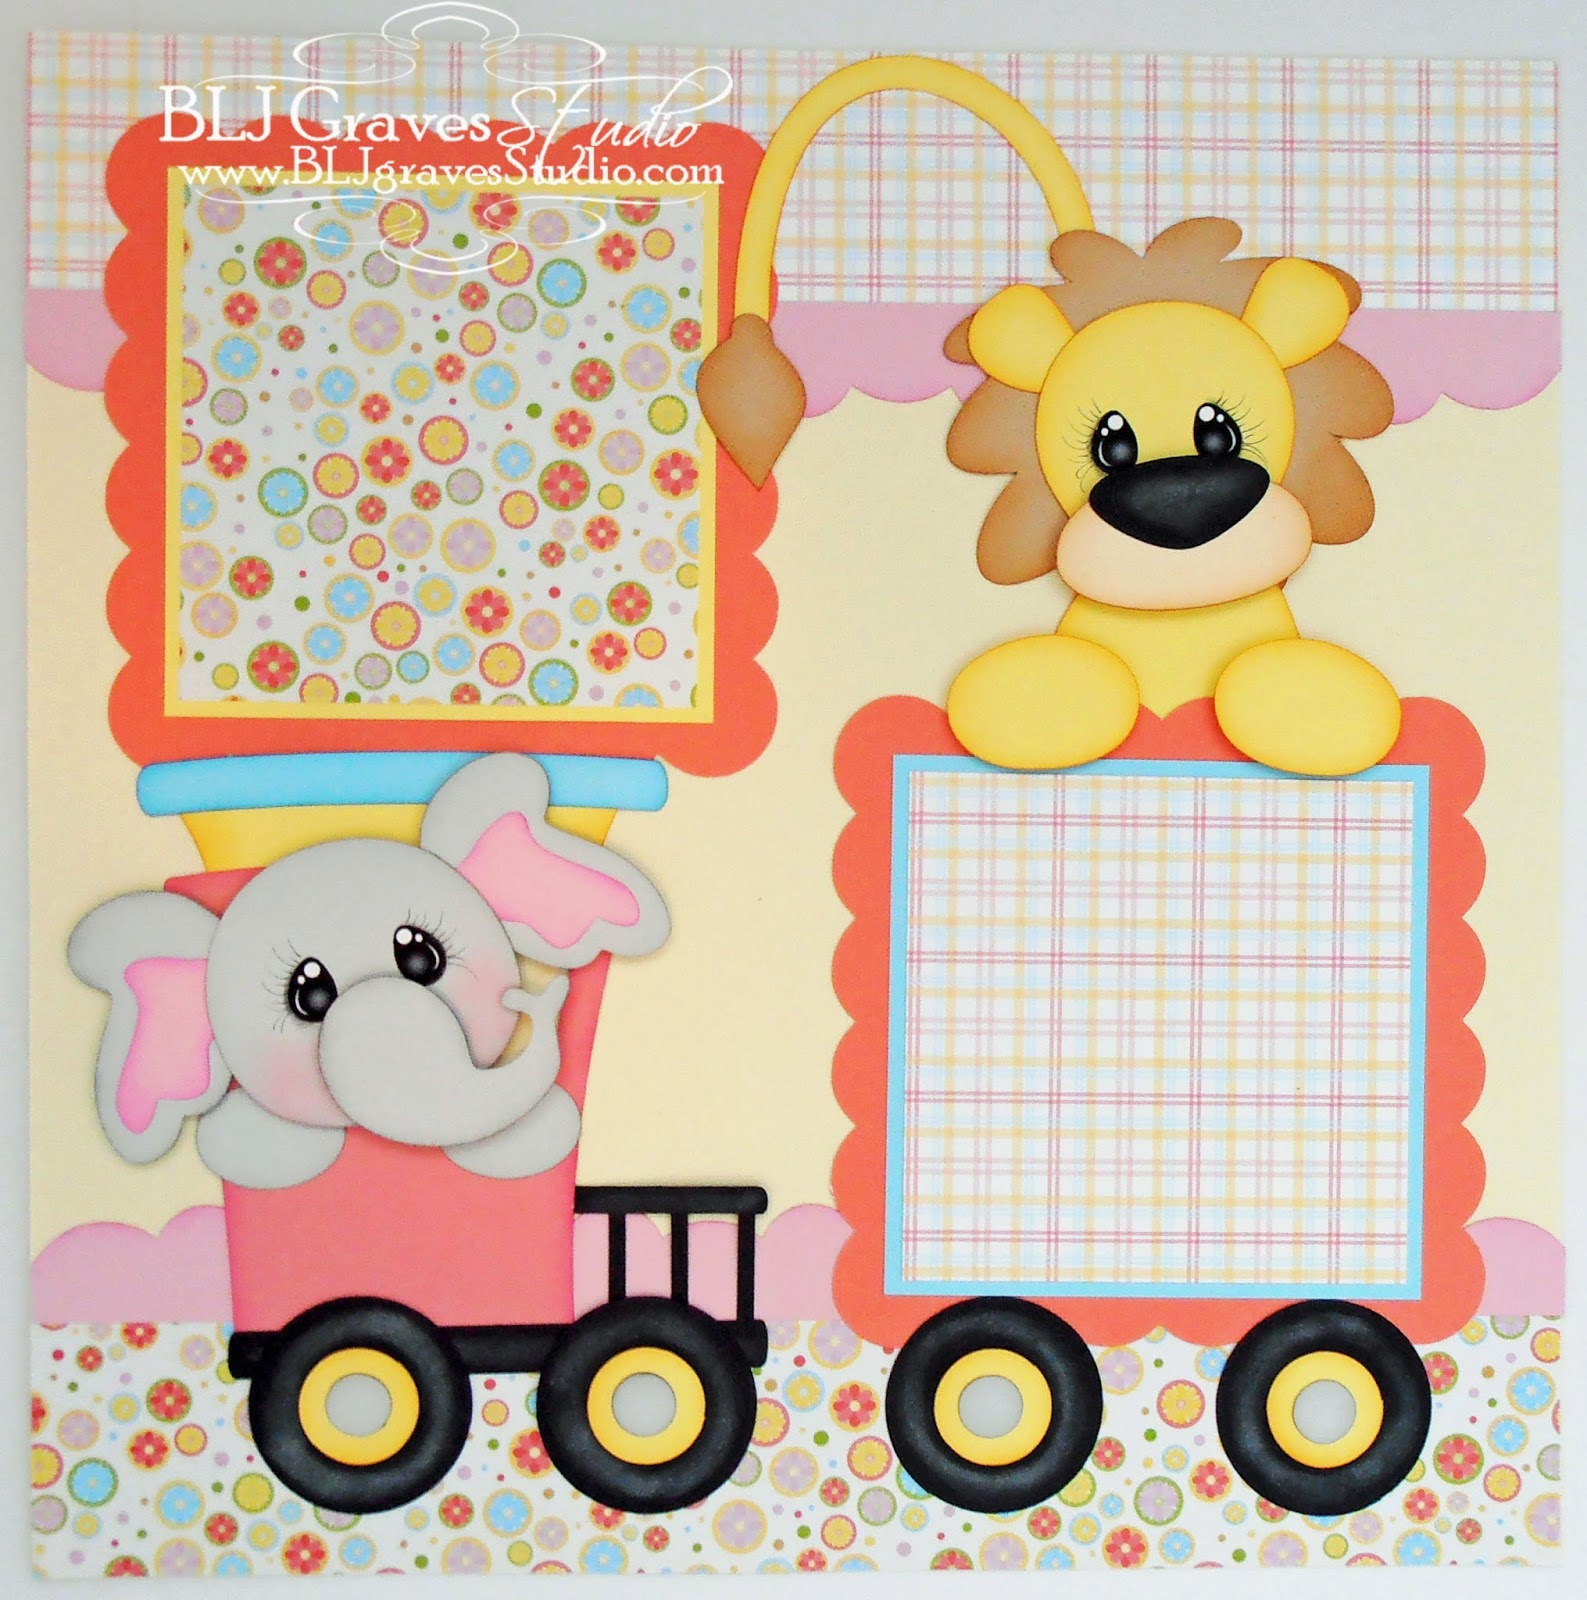 Scrapbook ideas for baby girl - Baby Girl Scrapbook Pages Cutting Files From Little Scraps Of Heaven Designs